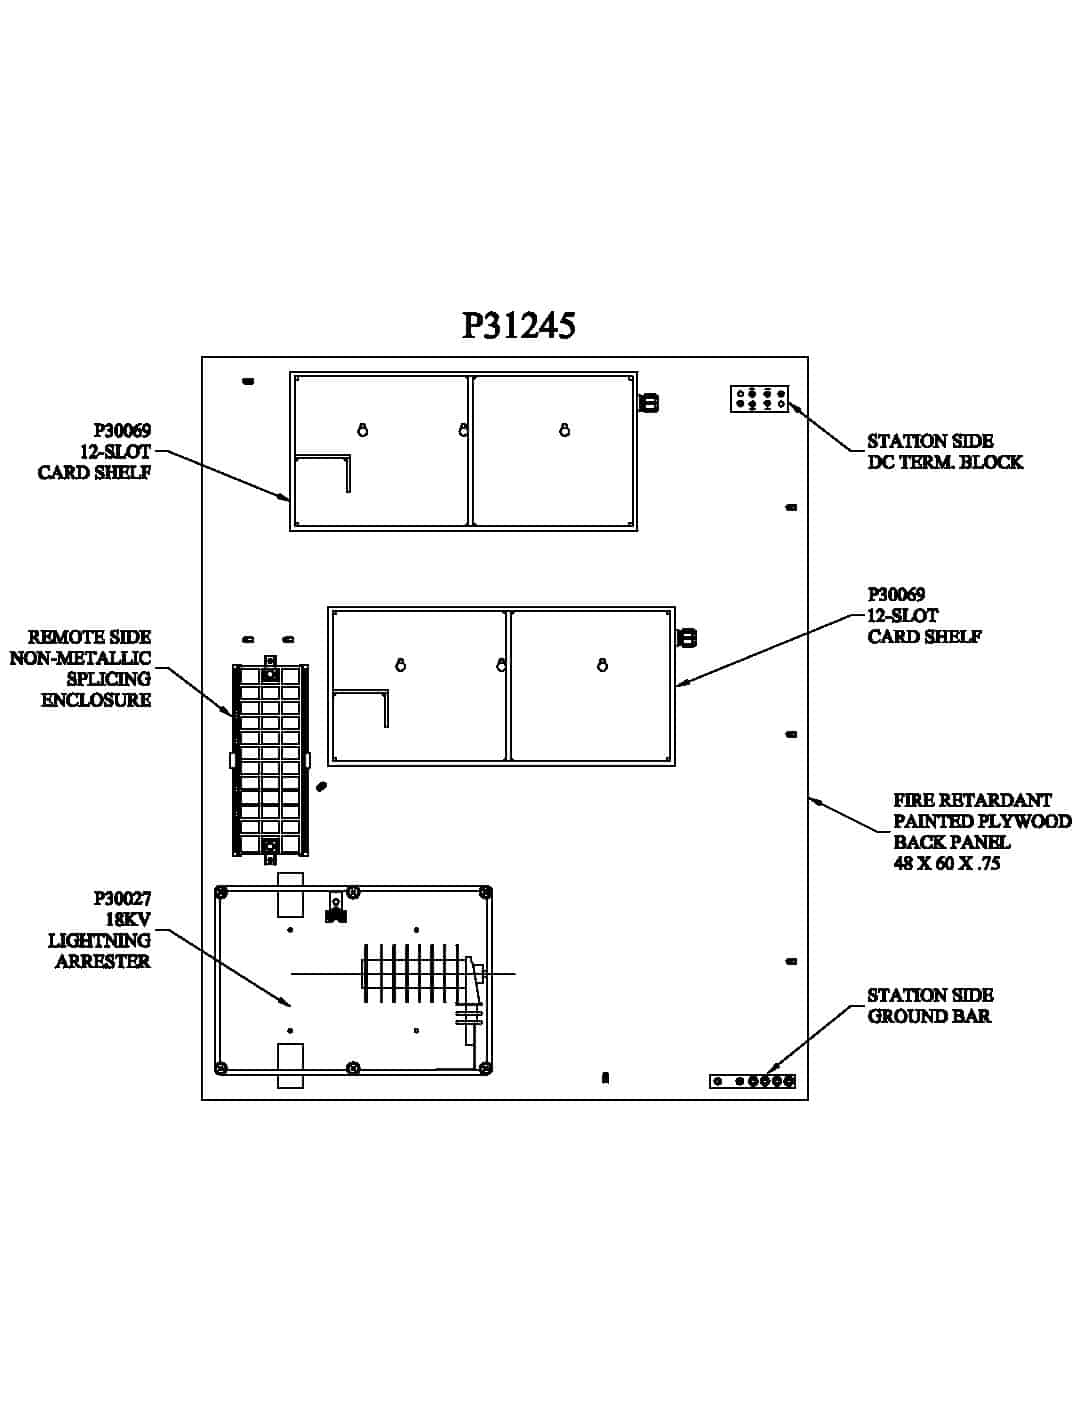 P31245 Turnkey Protection Packages – 12 slot PDF thumbnail